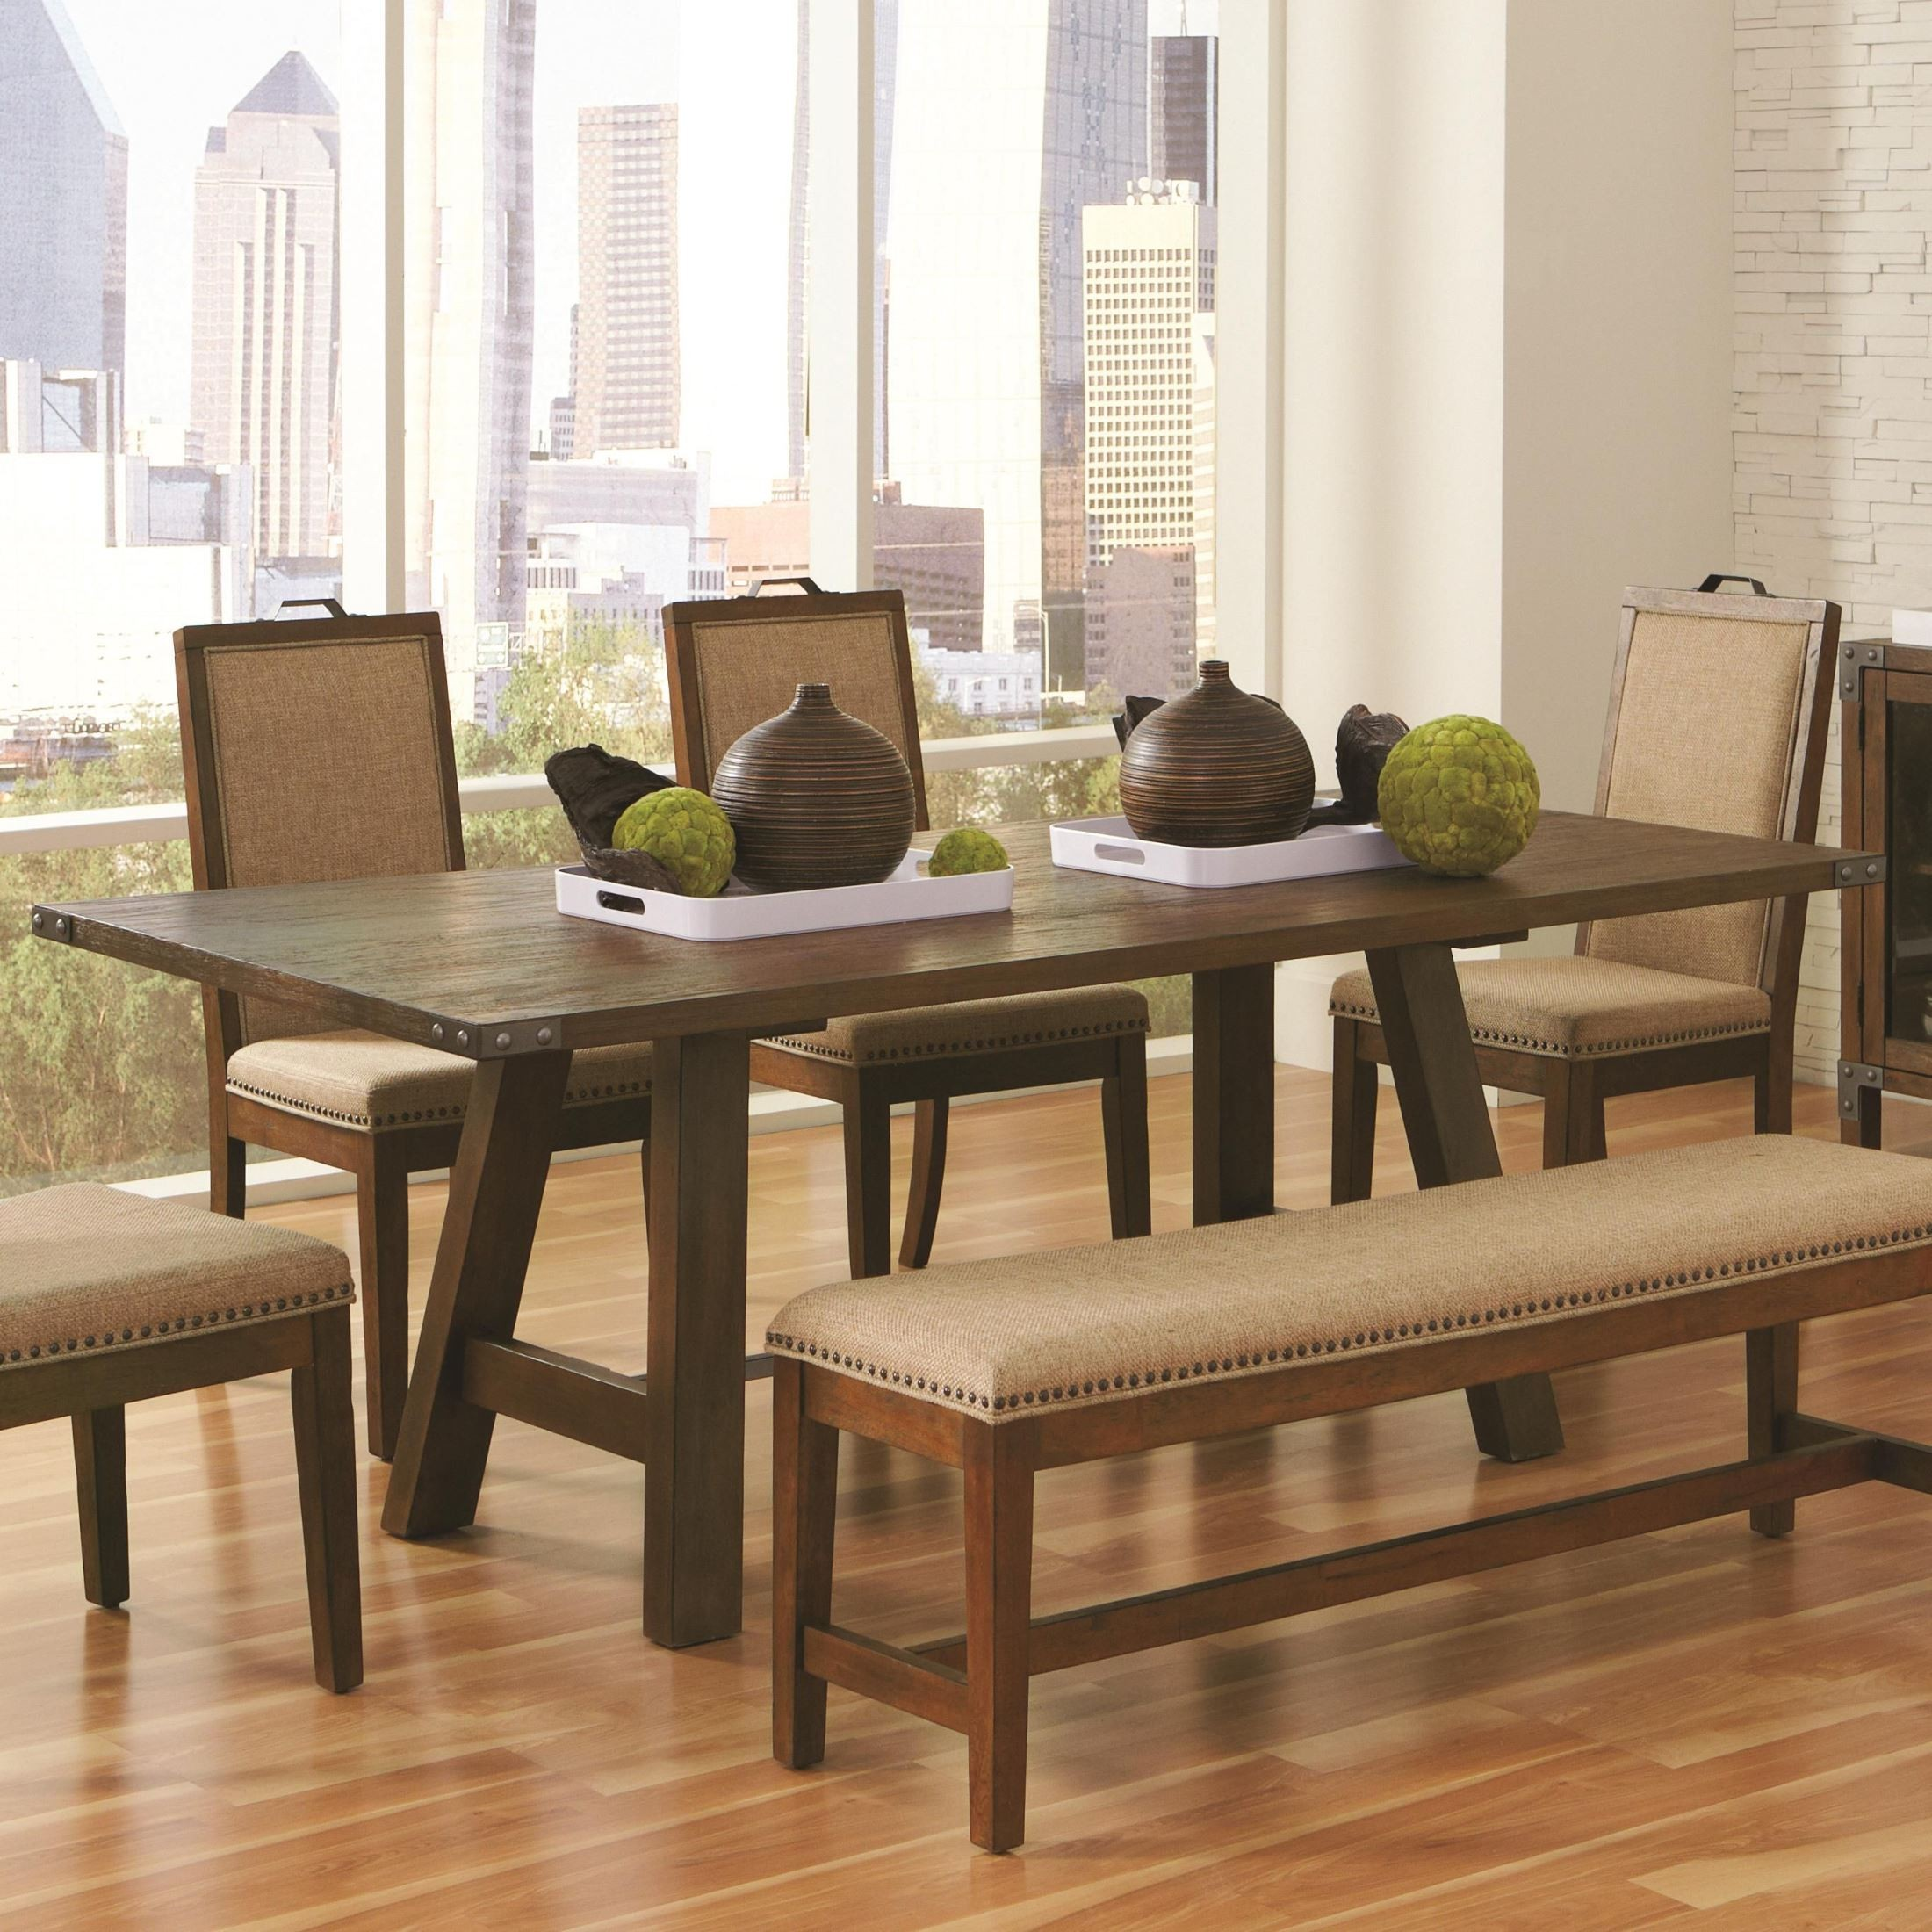 Ultimate Accents Urban 7 Piece Dining Set Reviews: Arcadia Weathered Acacia Rectangular Trestle Dining Table